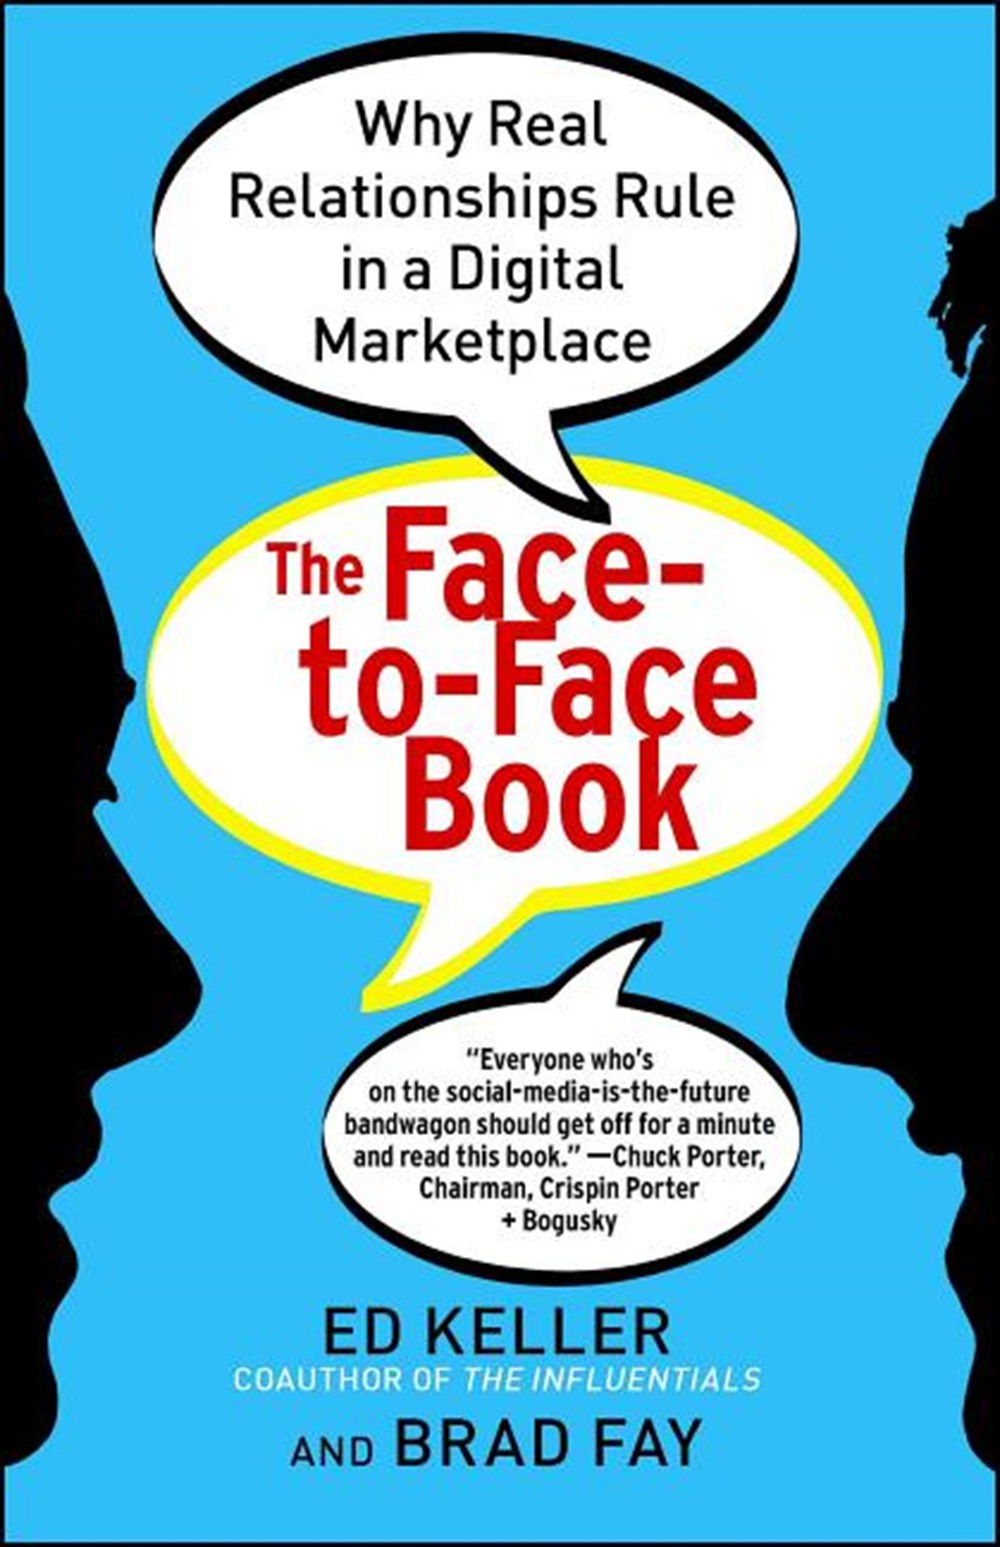 Face-To-Face Book Why Real Relationships Rule in a Digital Marketplace